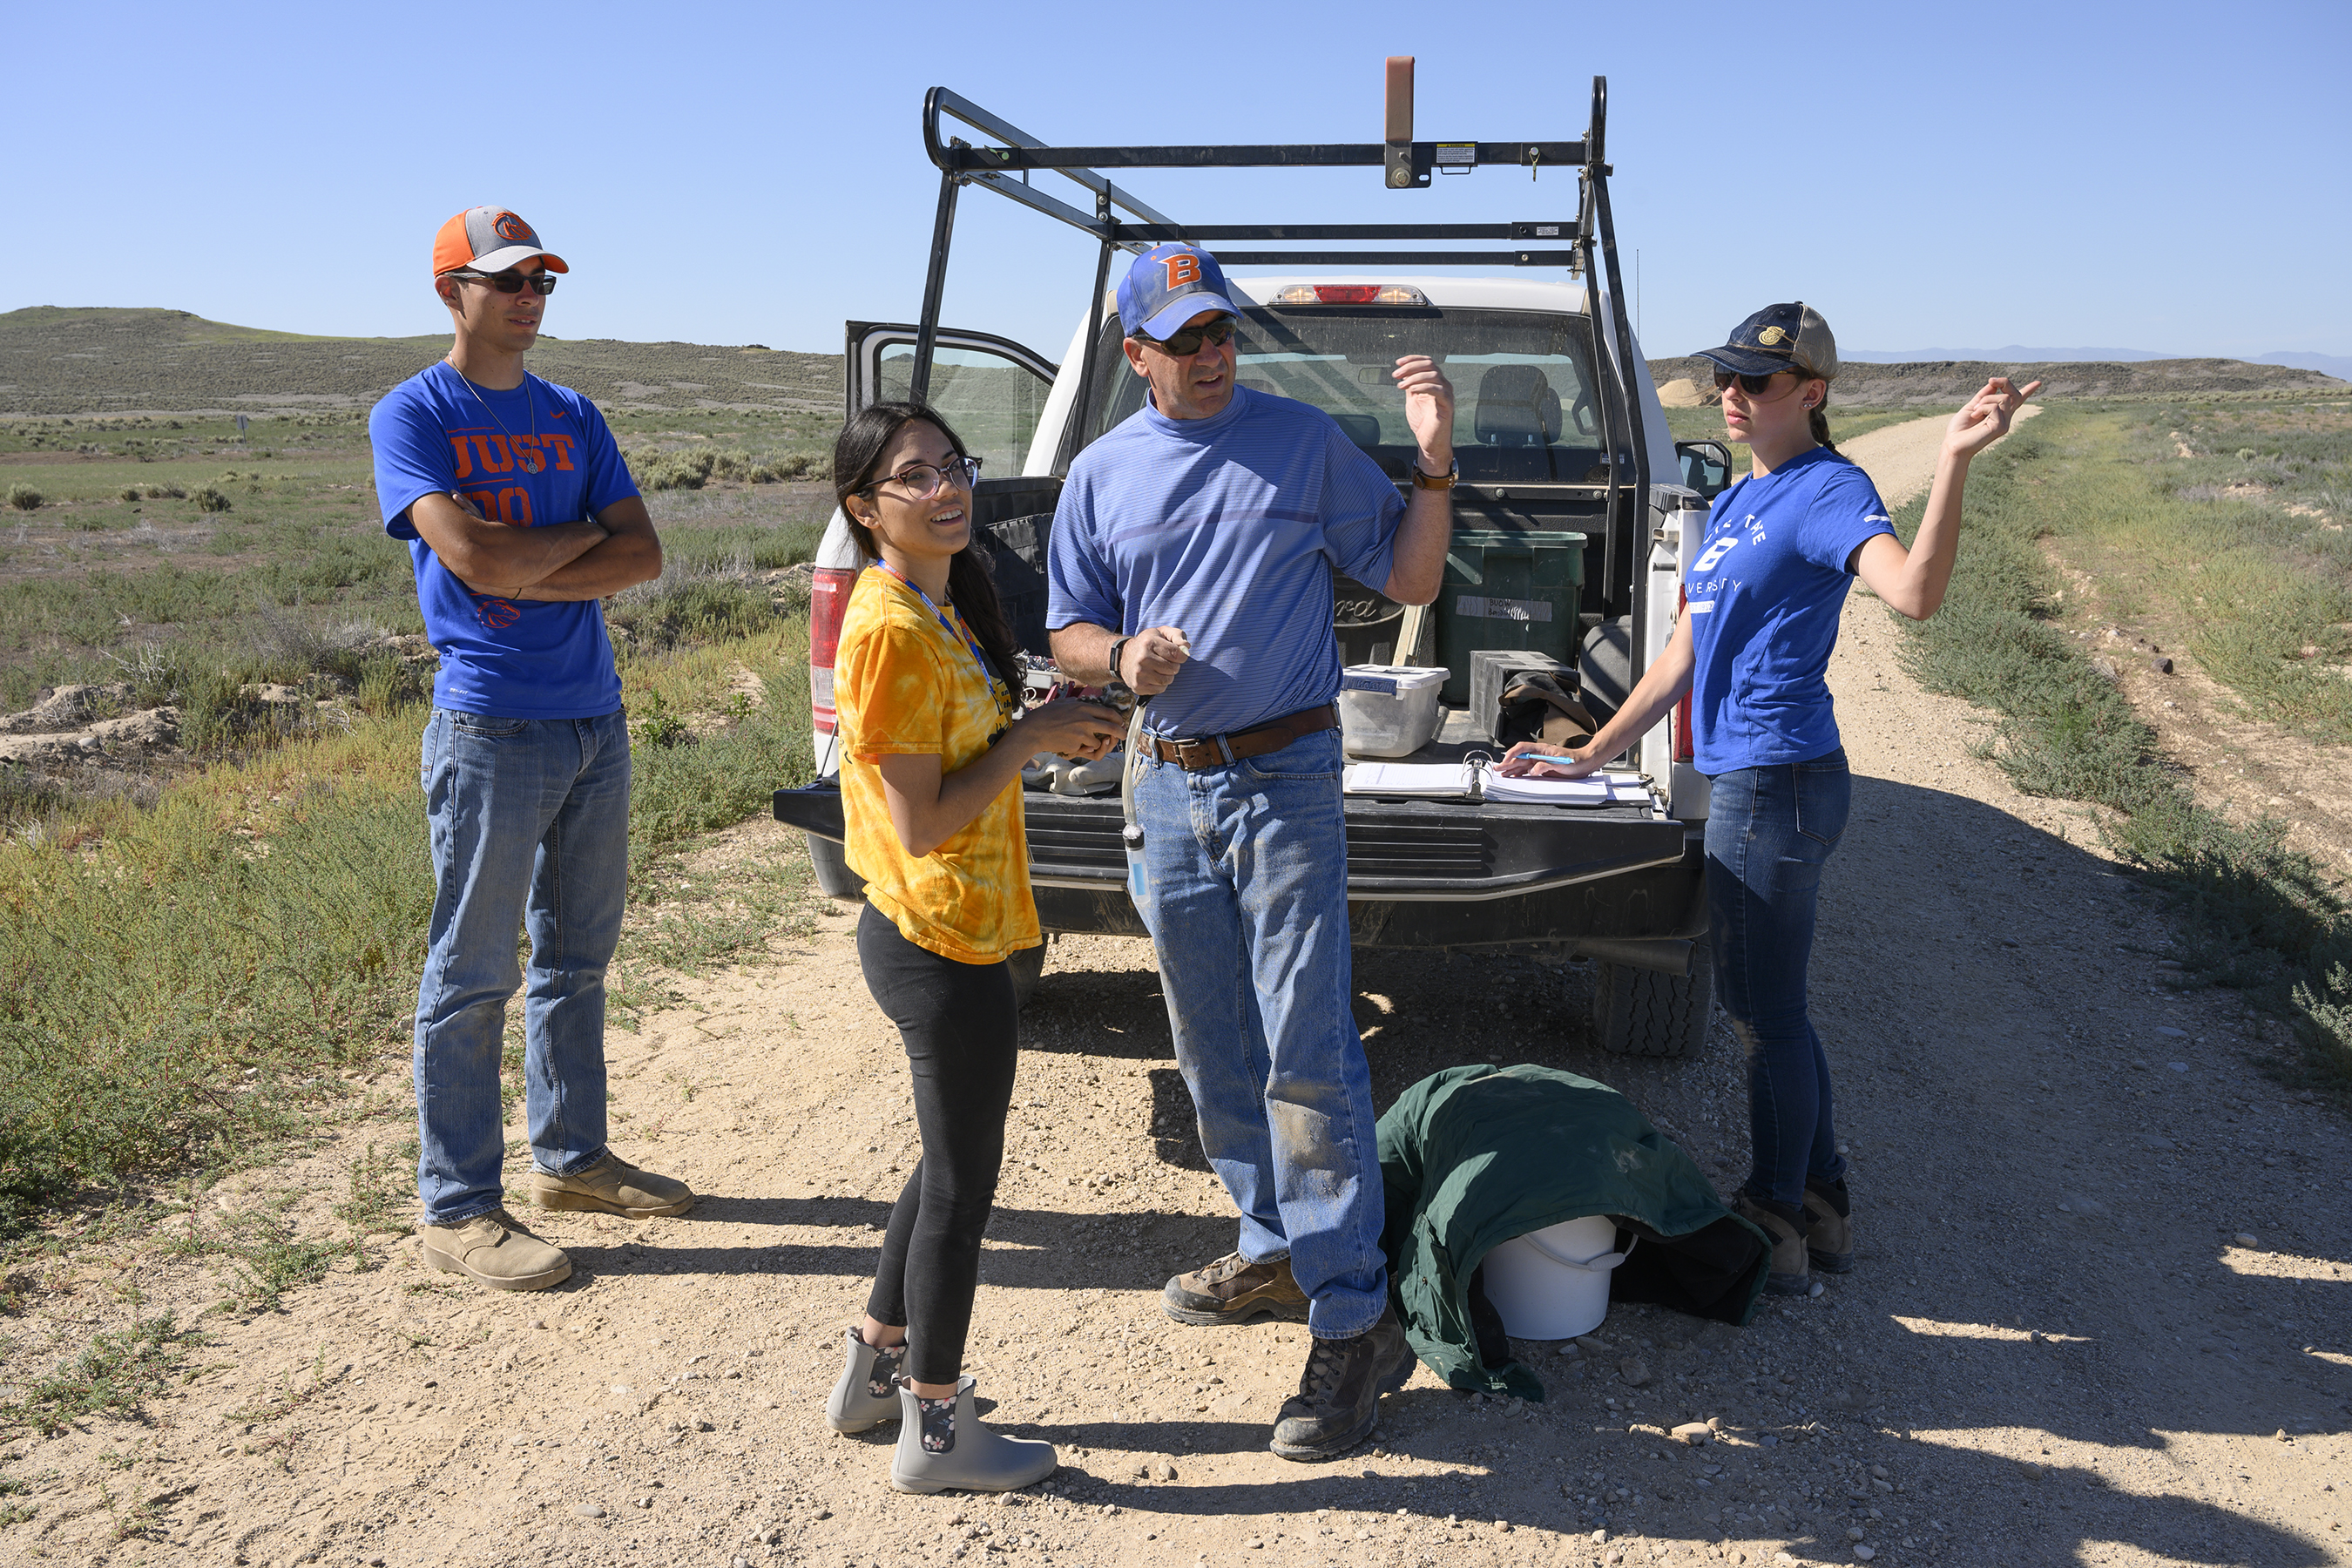 Jim Belthoff and research students stand behind truck on dirt road